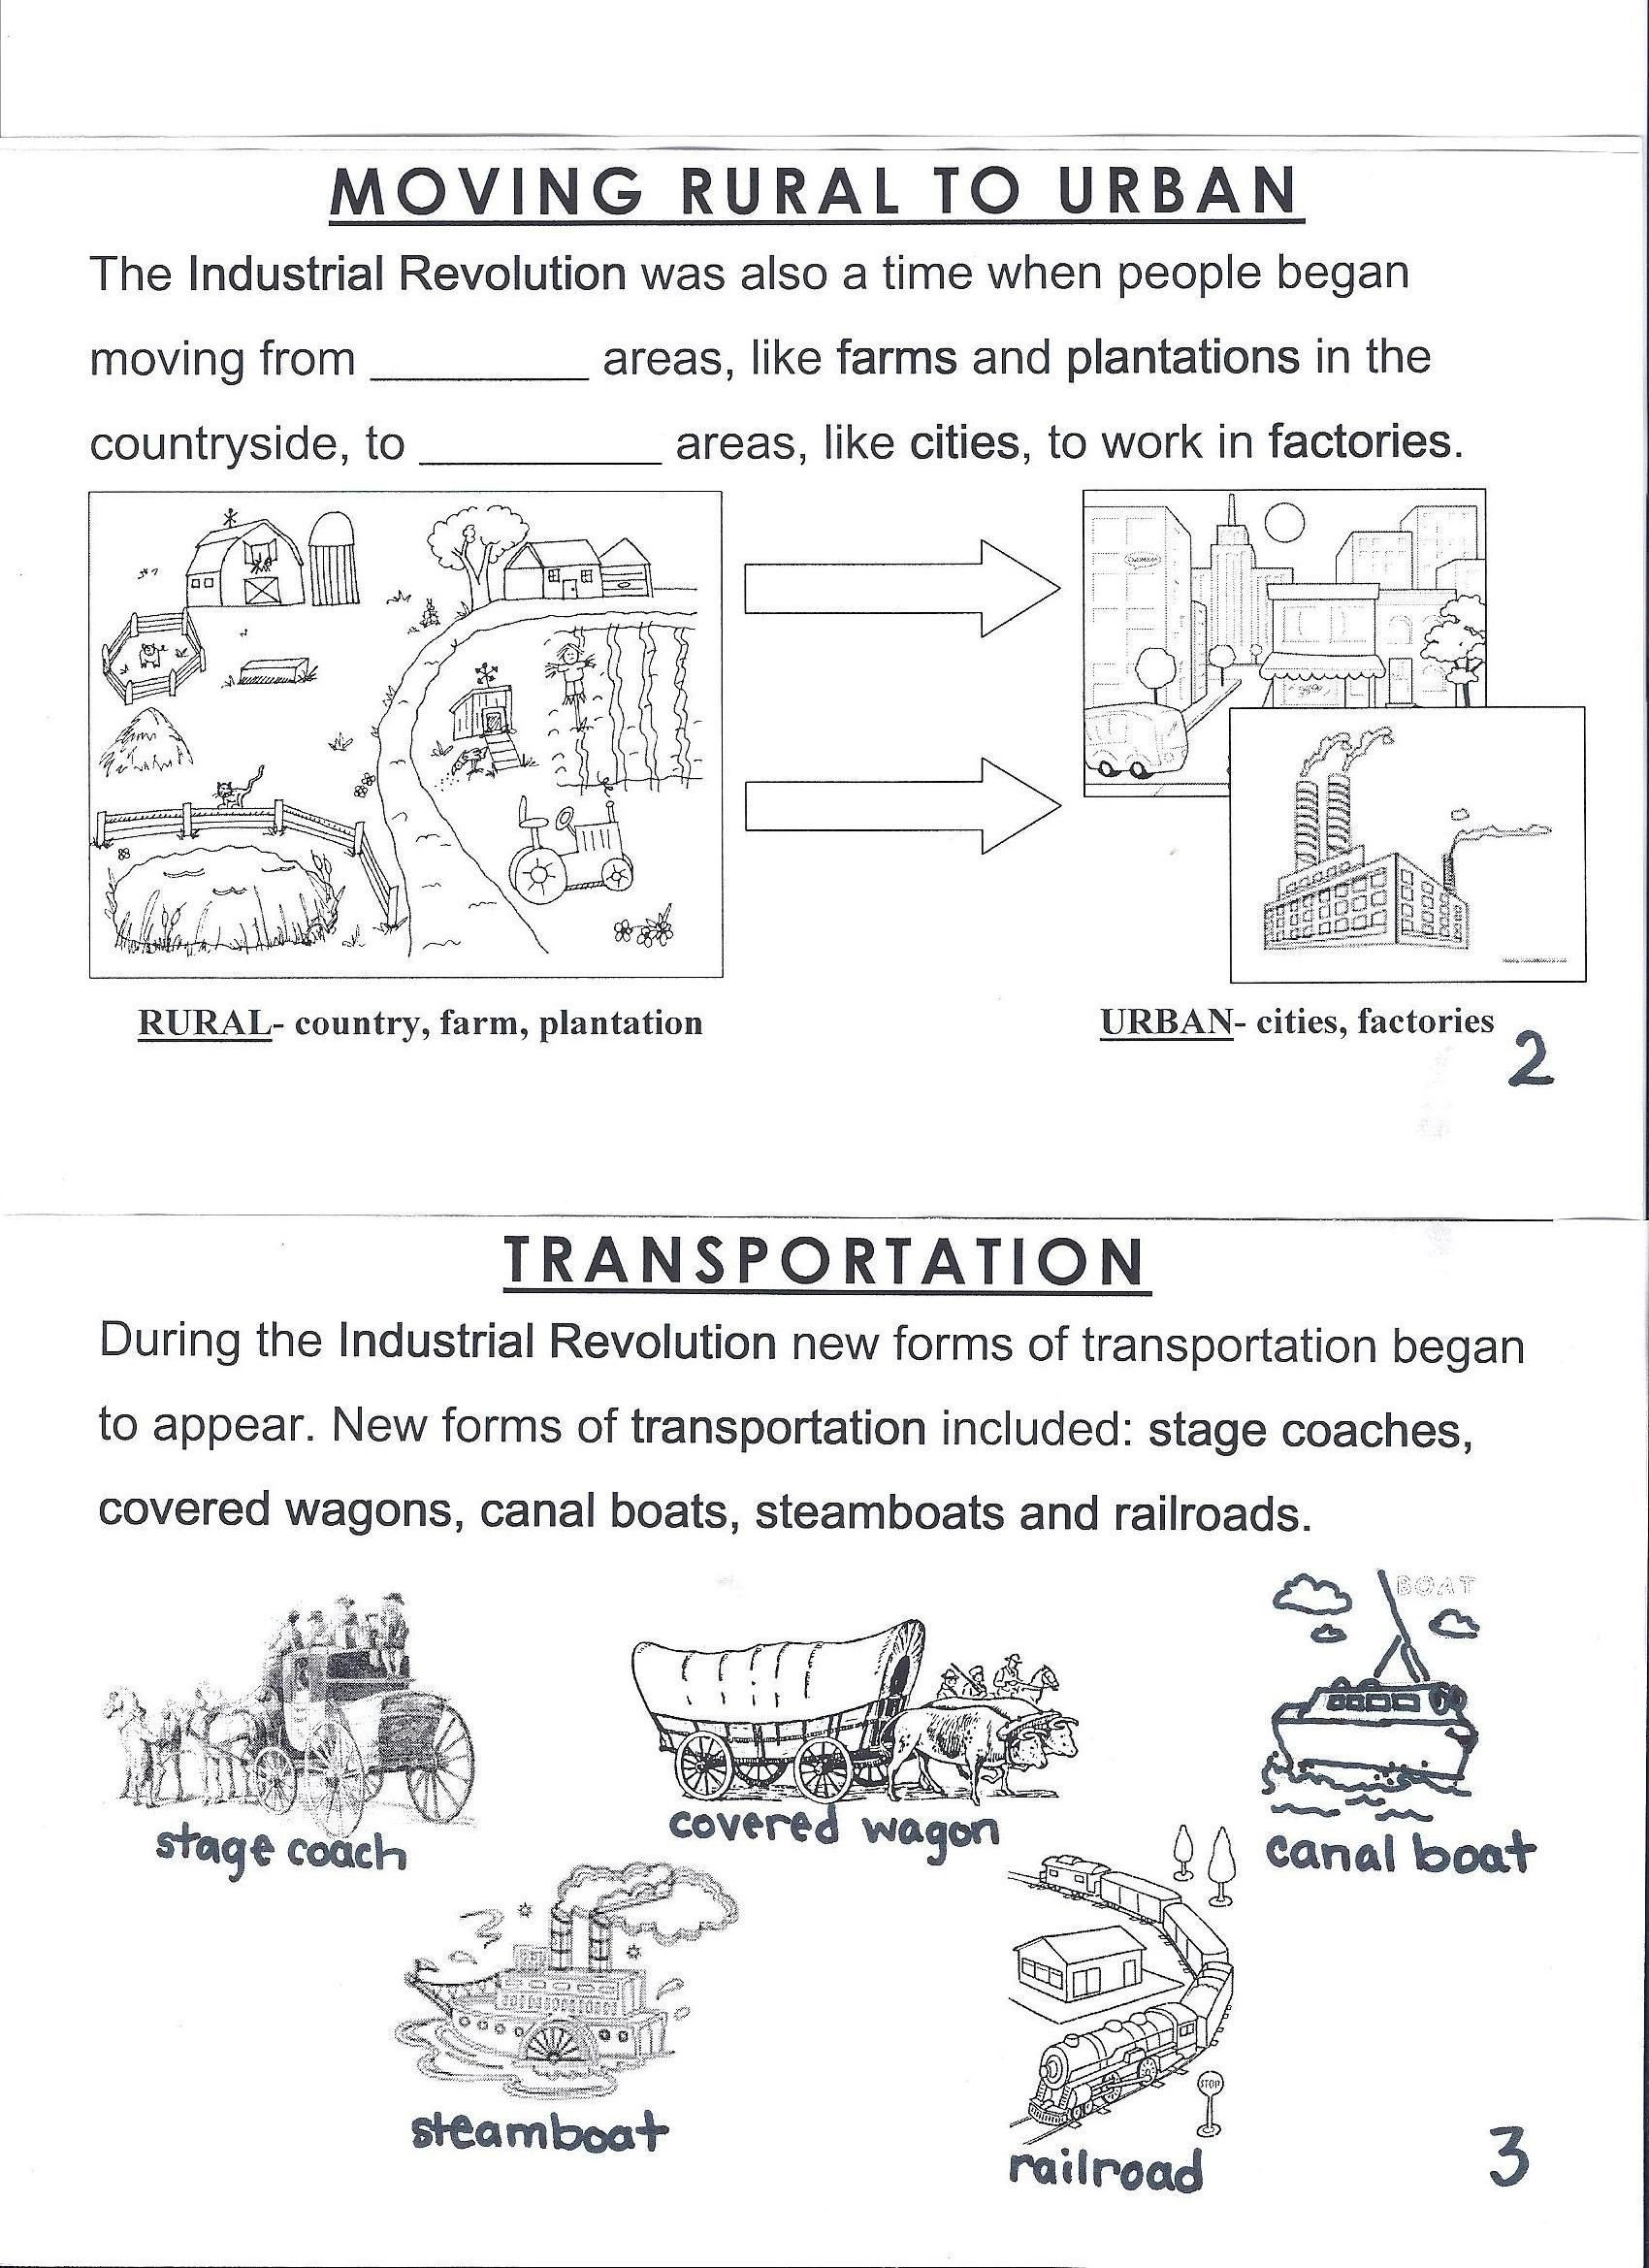 Industrial Revolution Worksheet Pdf Industrial Revolution 2 1 700—2 338 Pixels